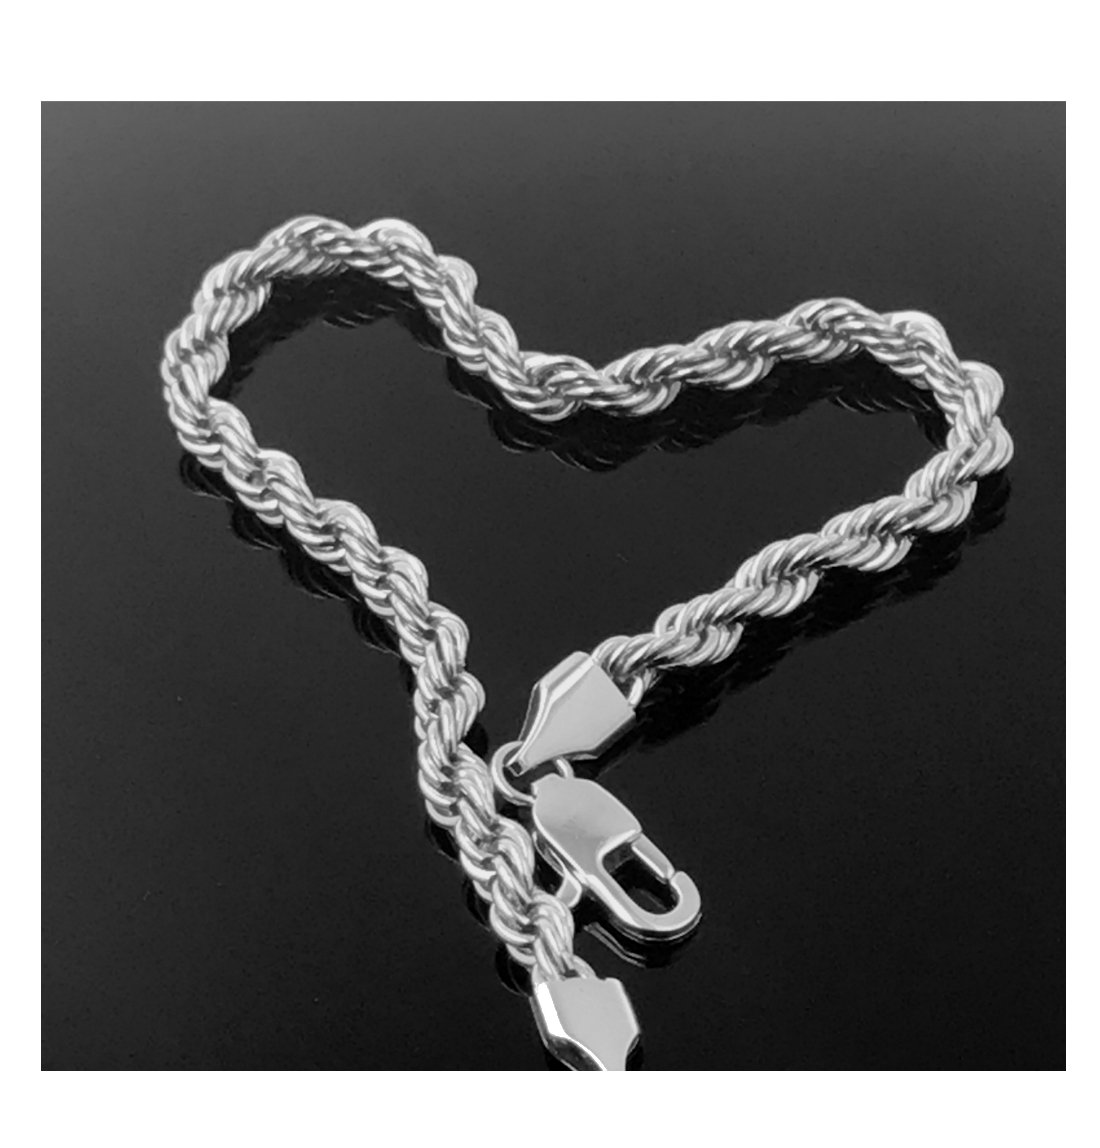 White Gold Filled 18kt Diamond Cut Rope Chain Bracelets 5MM With A USA Made! (8)